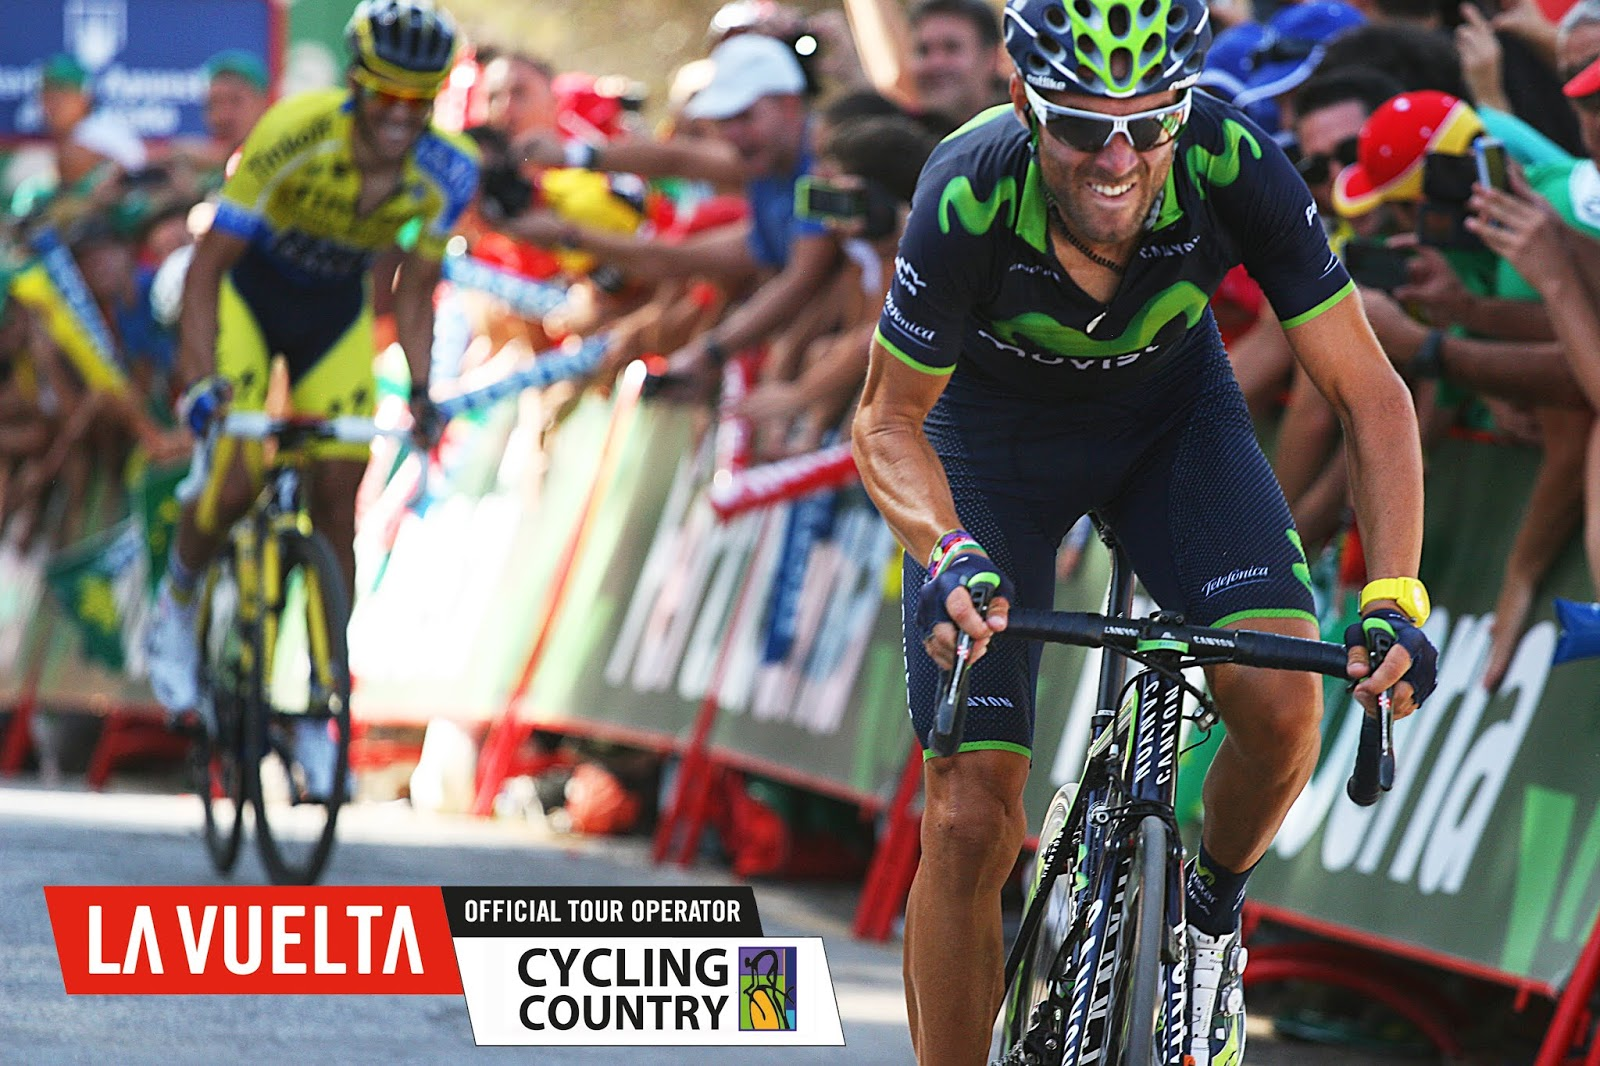 Cycling Country at La Vuelta Bike Tour in Granada's stage